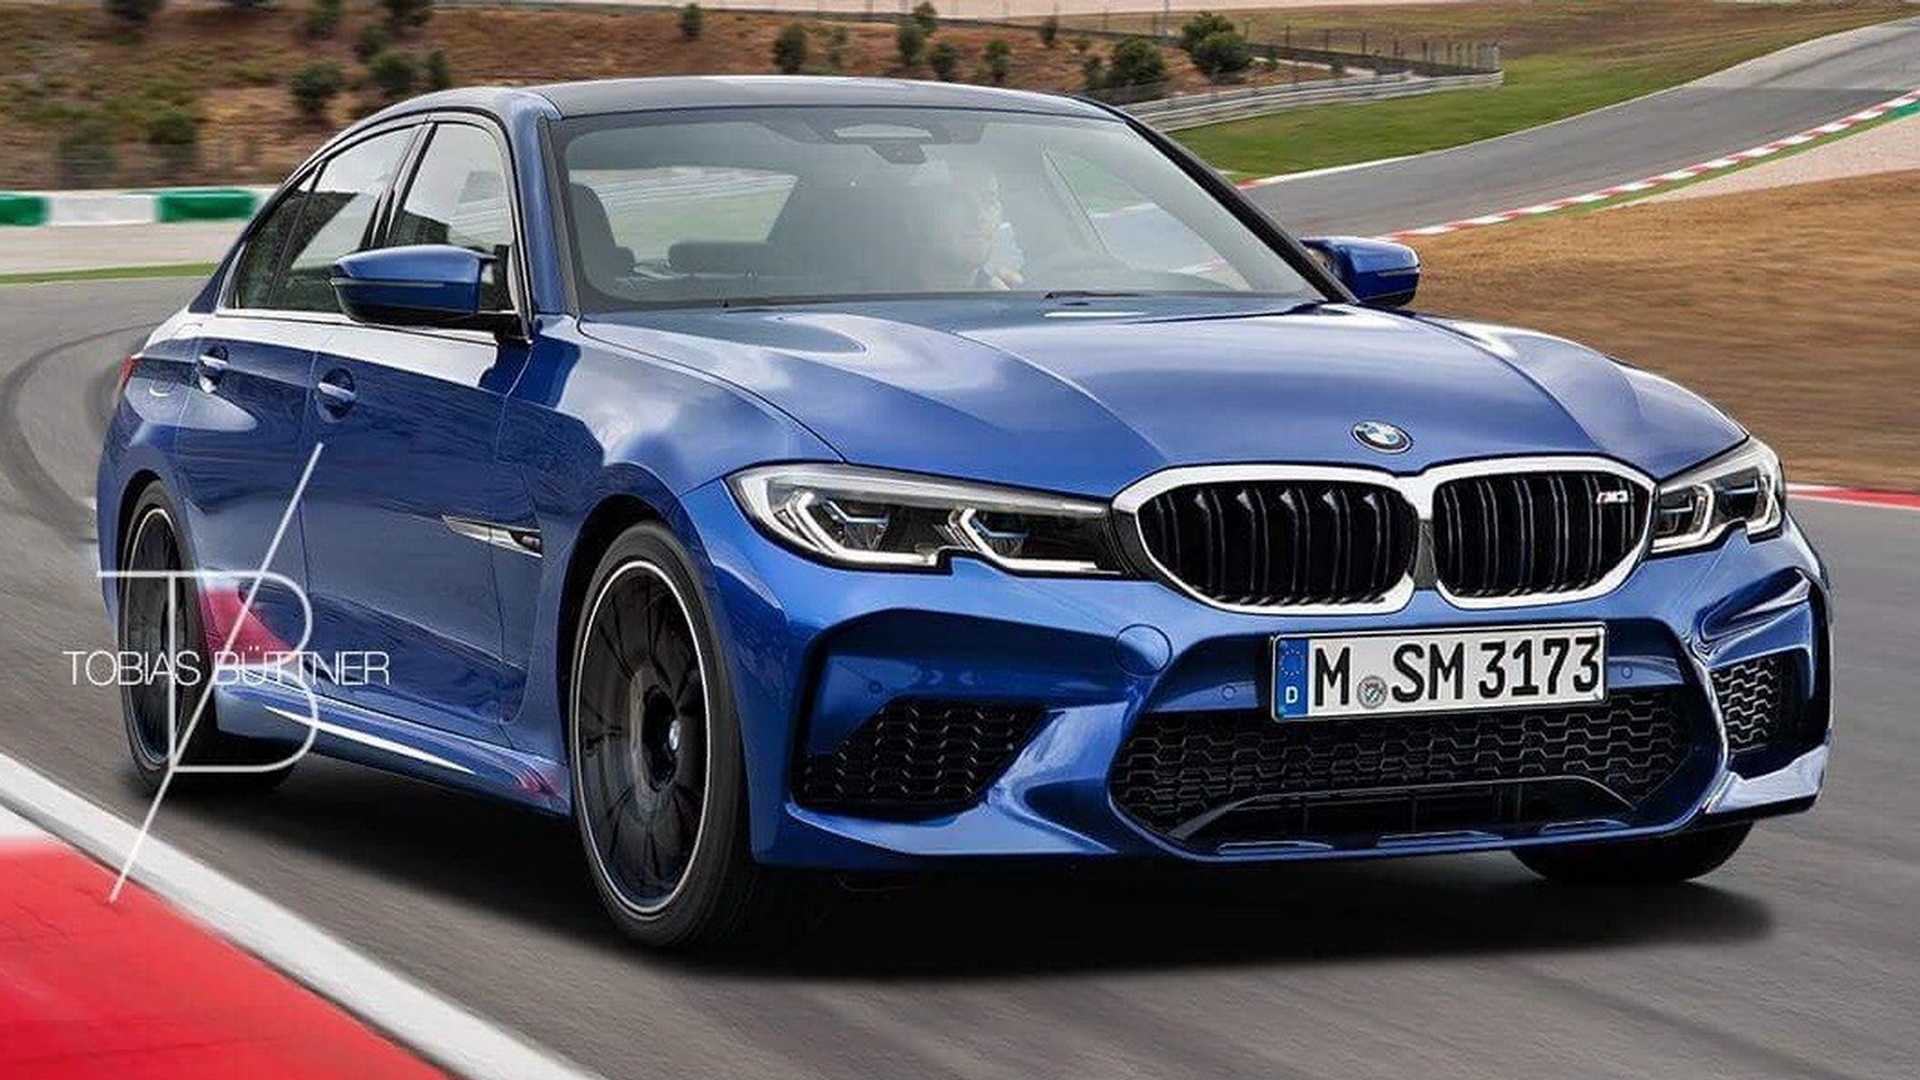 62 New 2020 BMW M3 Review And Release Date